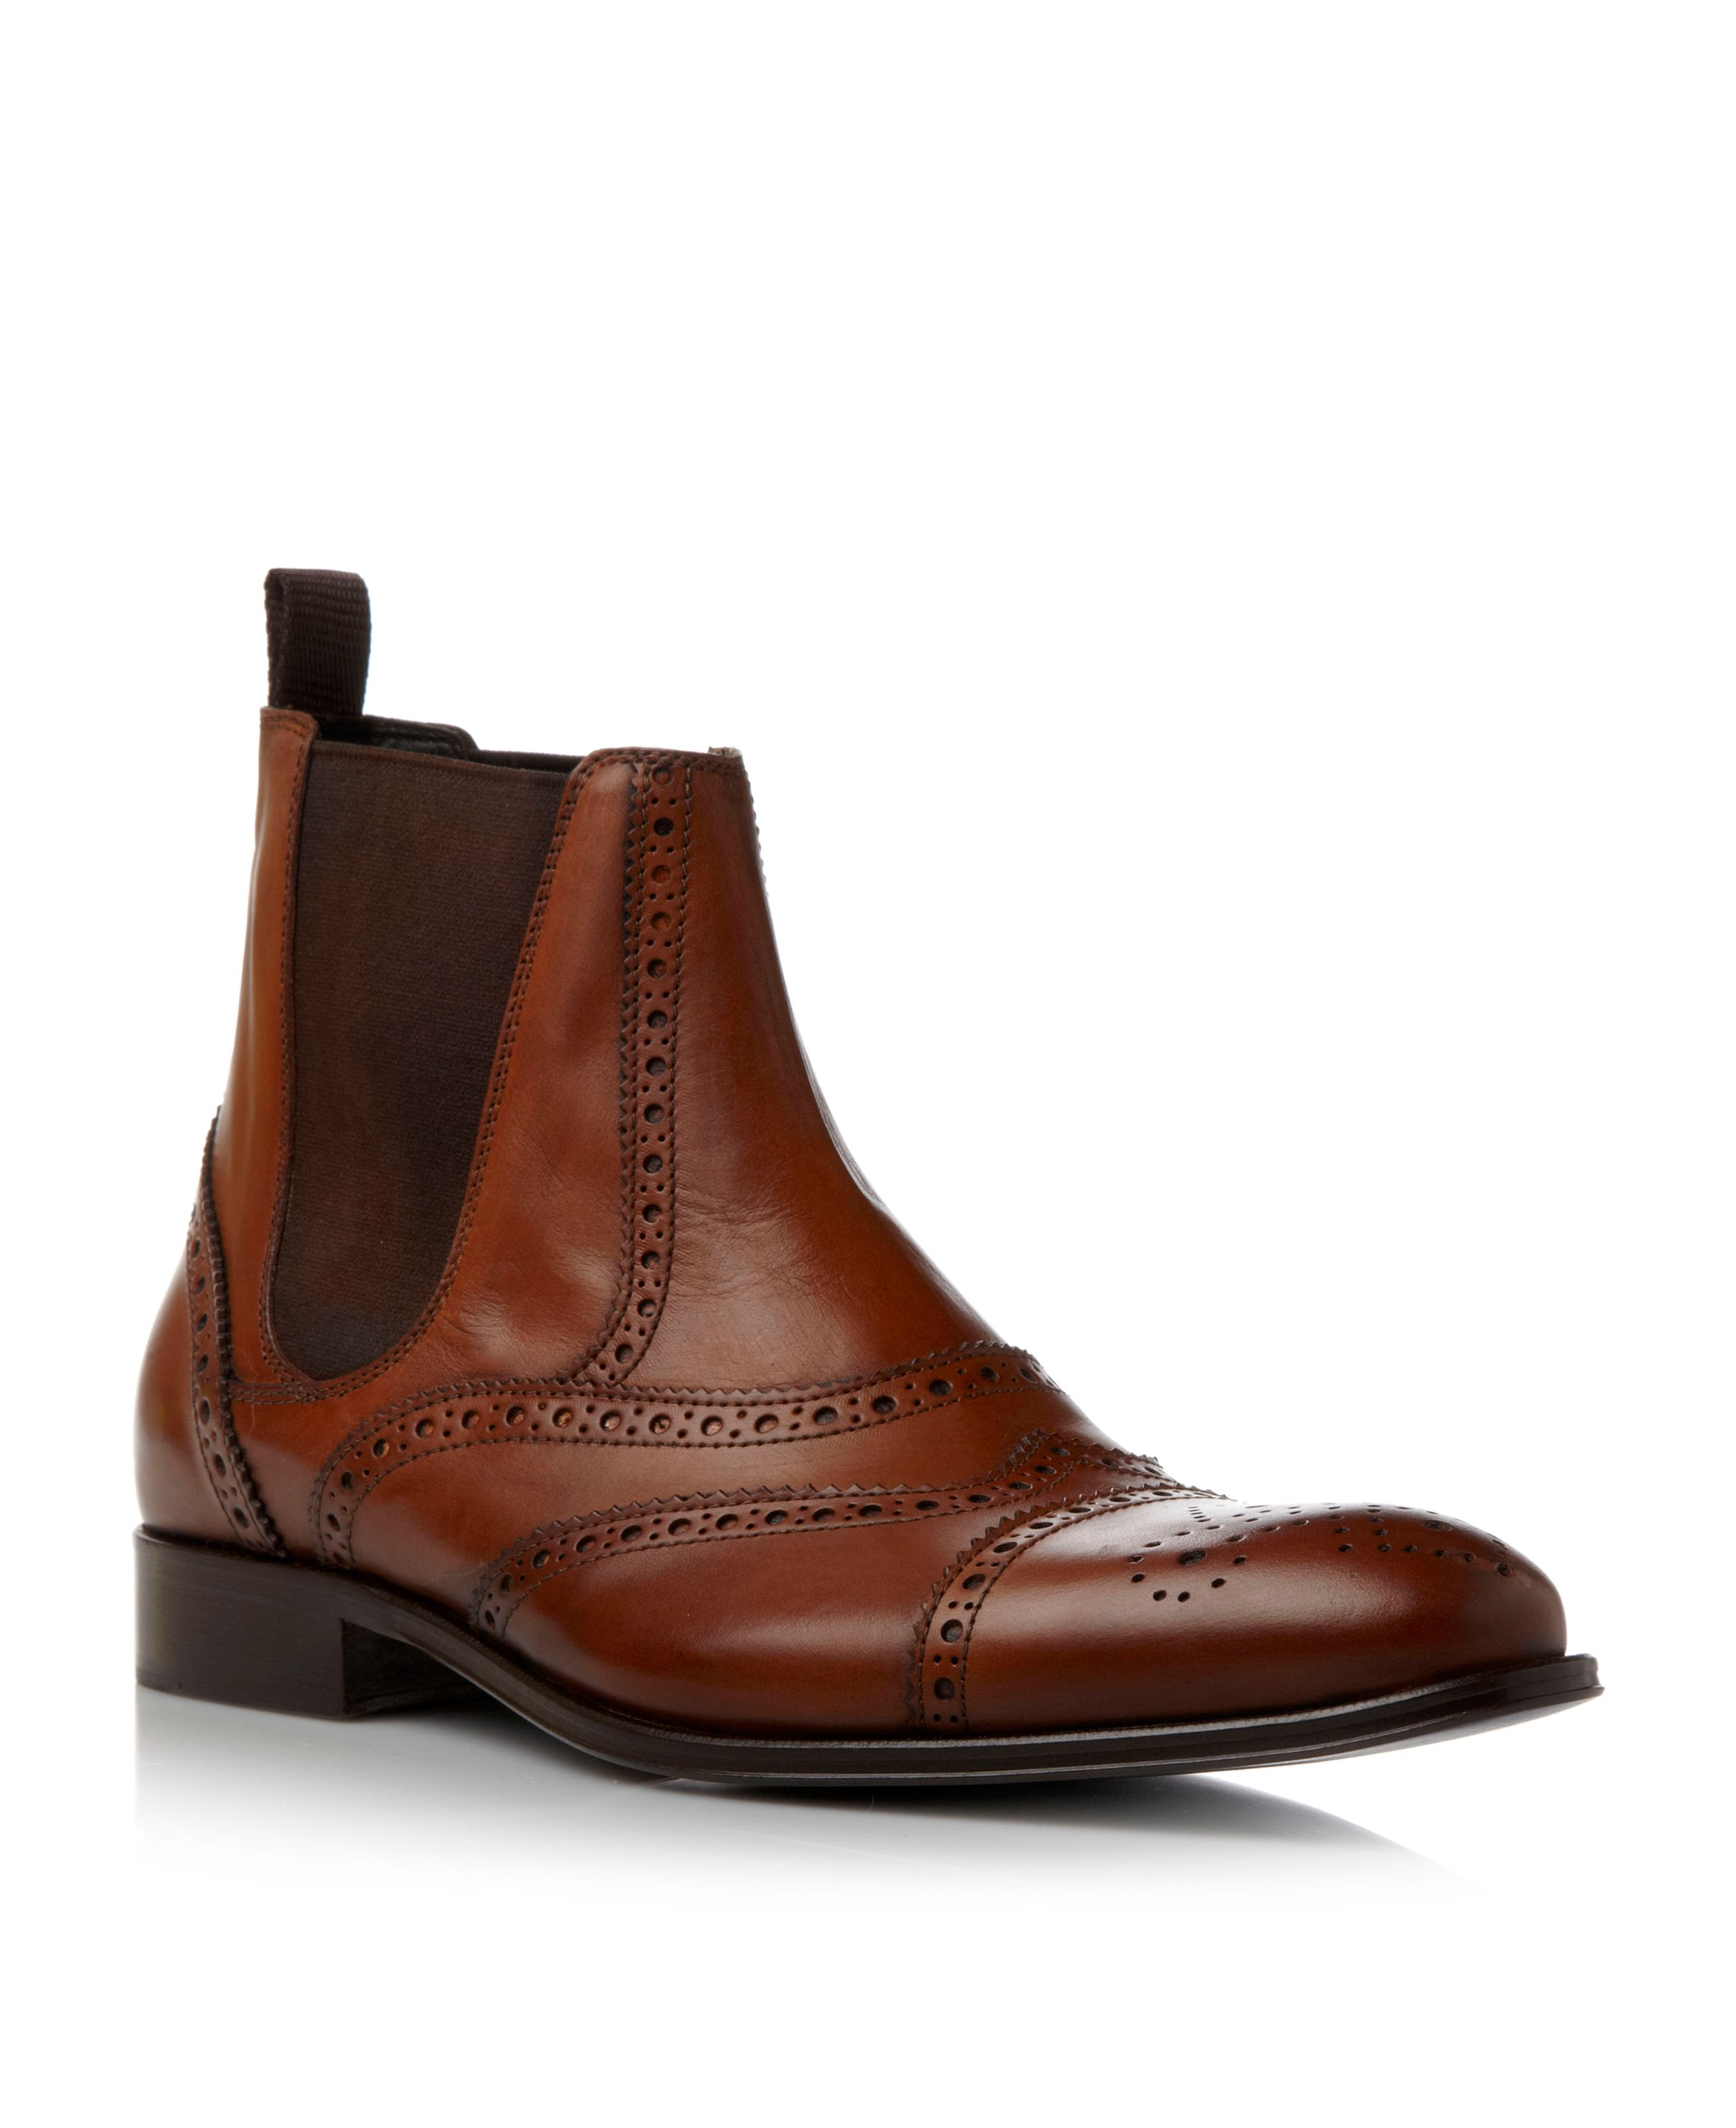 Carriage 1 brogue chelsea boots